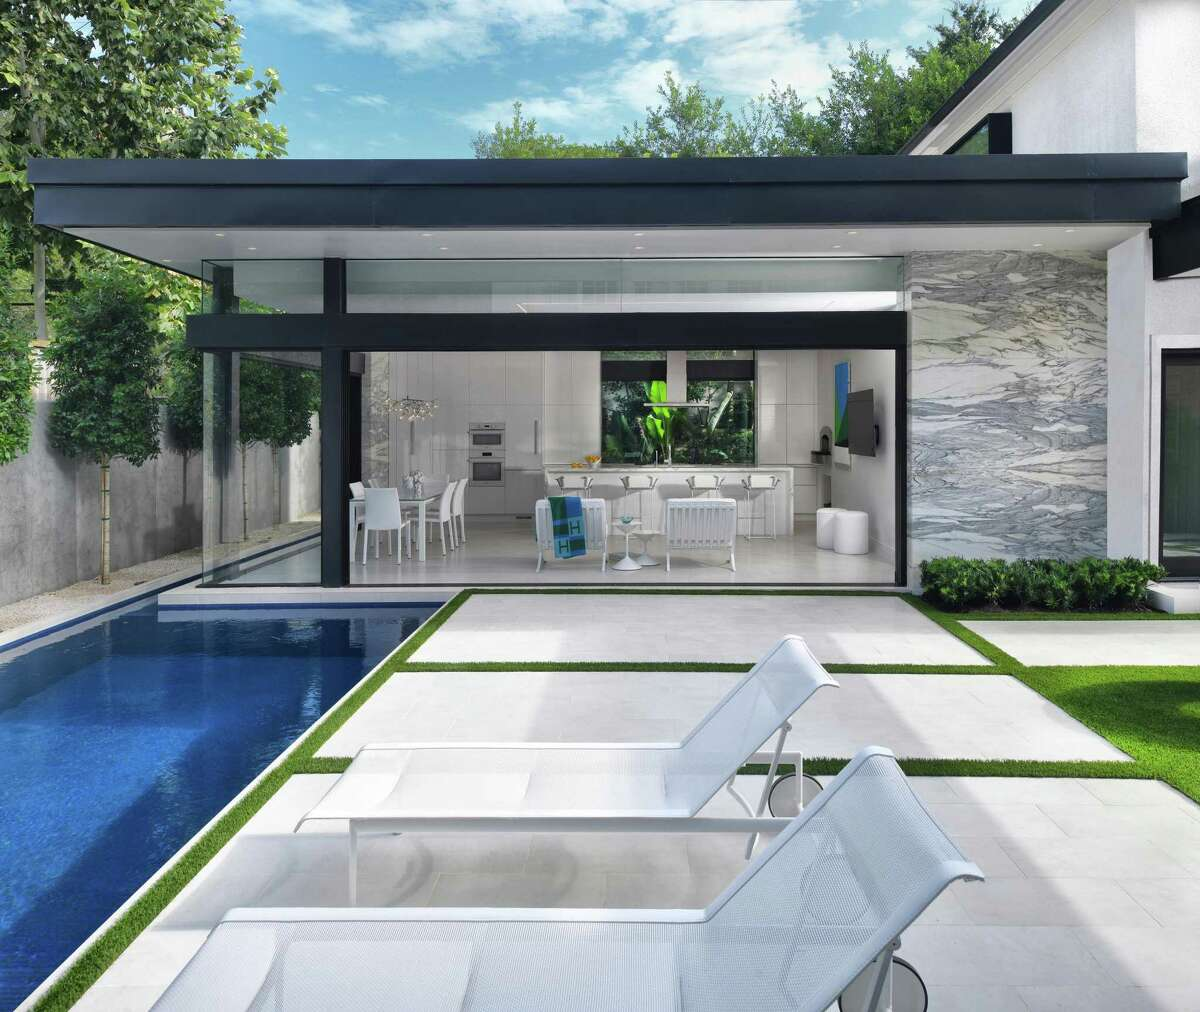 This River Oaks home by Gary R. Chandler Architecture will be on the 2021 Houston Modern Home Tour.